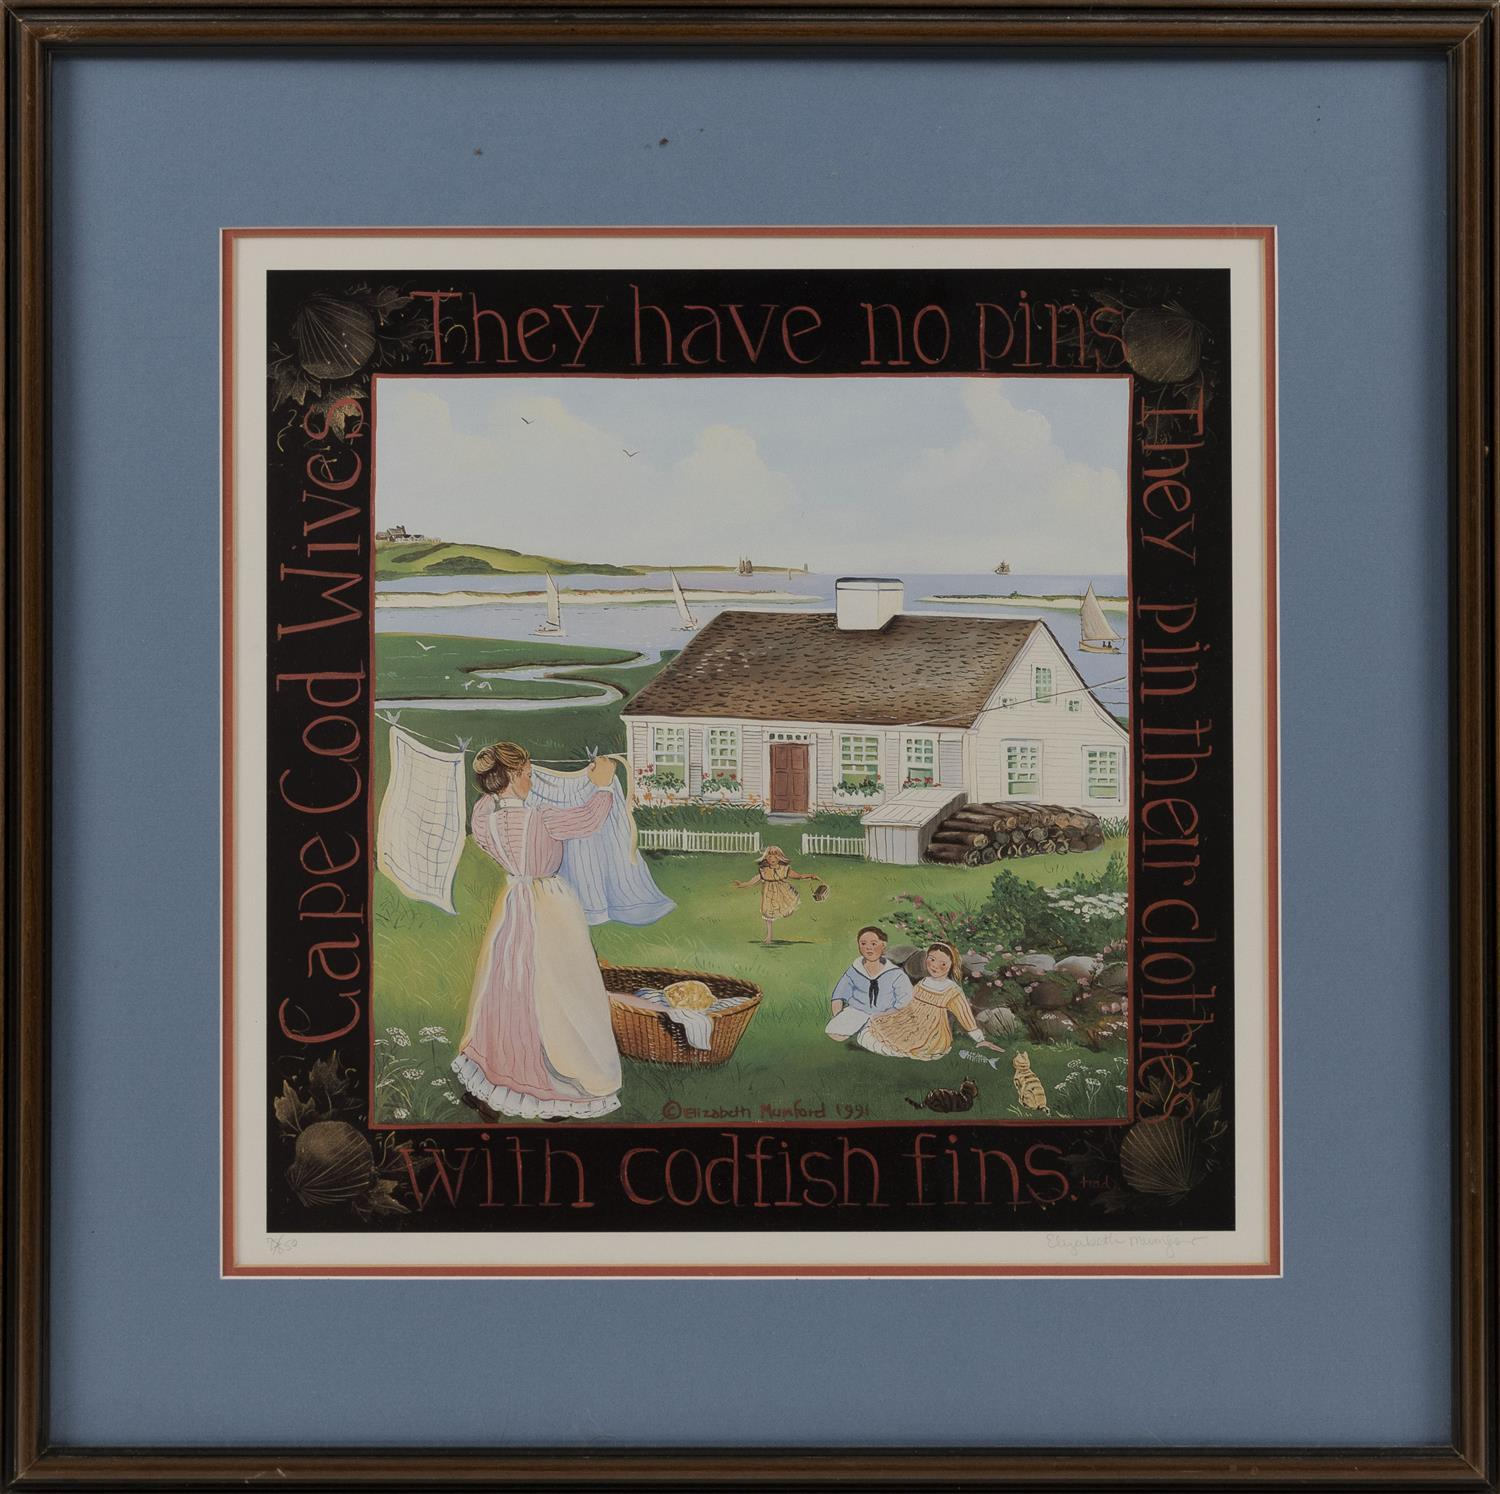 """ELIZABETH MUMFORD, Cape Cod, 1949-2020, """"Cape Cod Wives They Have No Pins They Pin Their Clothes With Codfish Pins""""., Lithograph on..."""